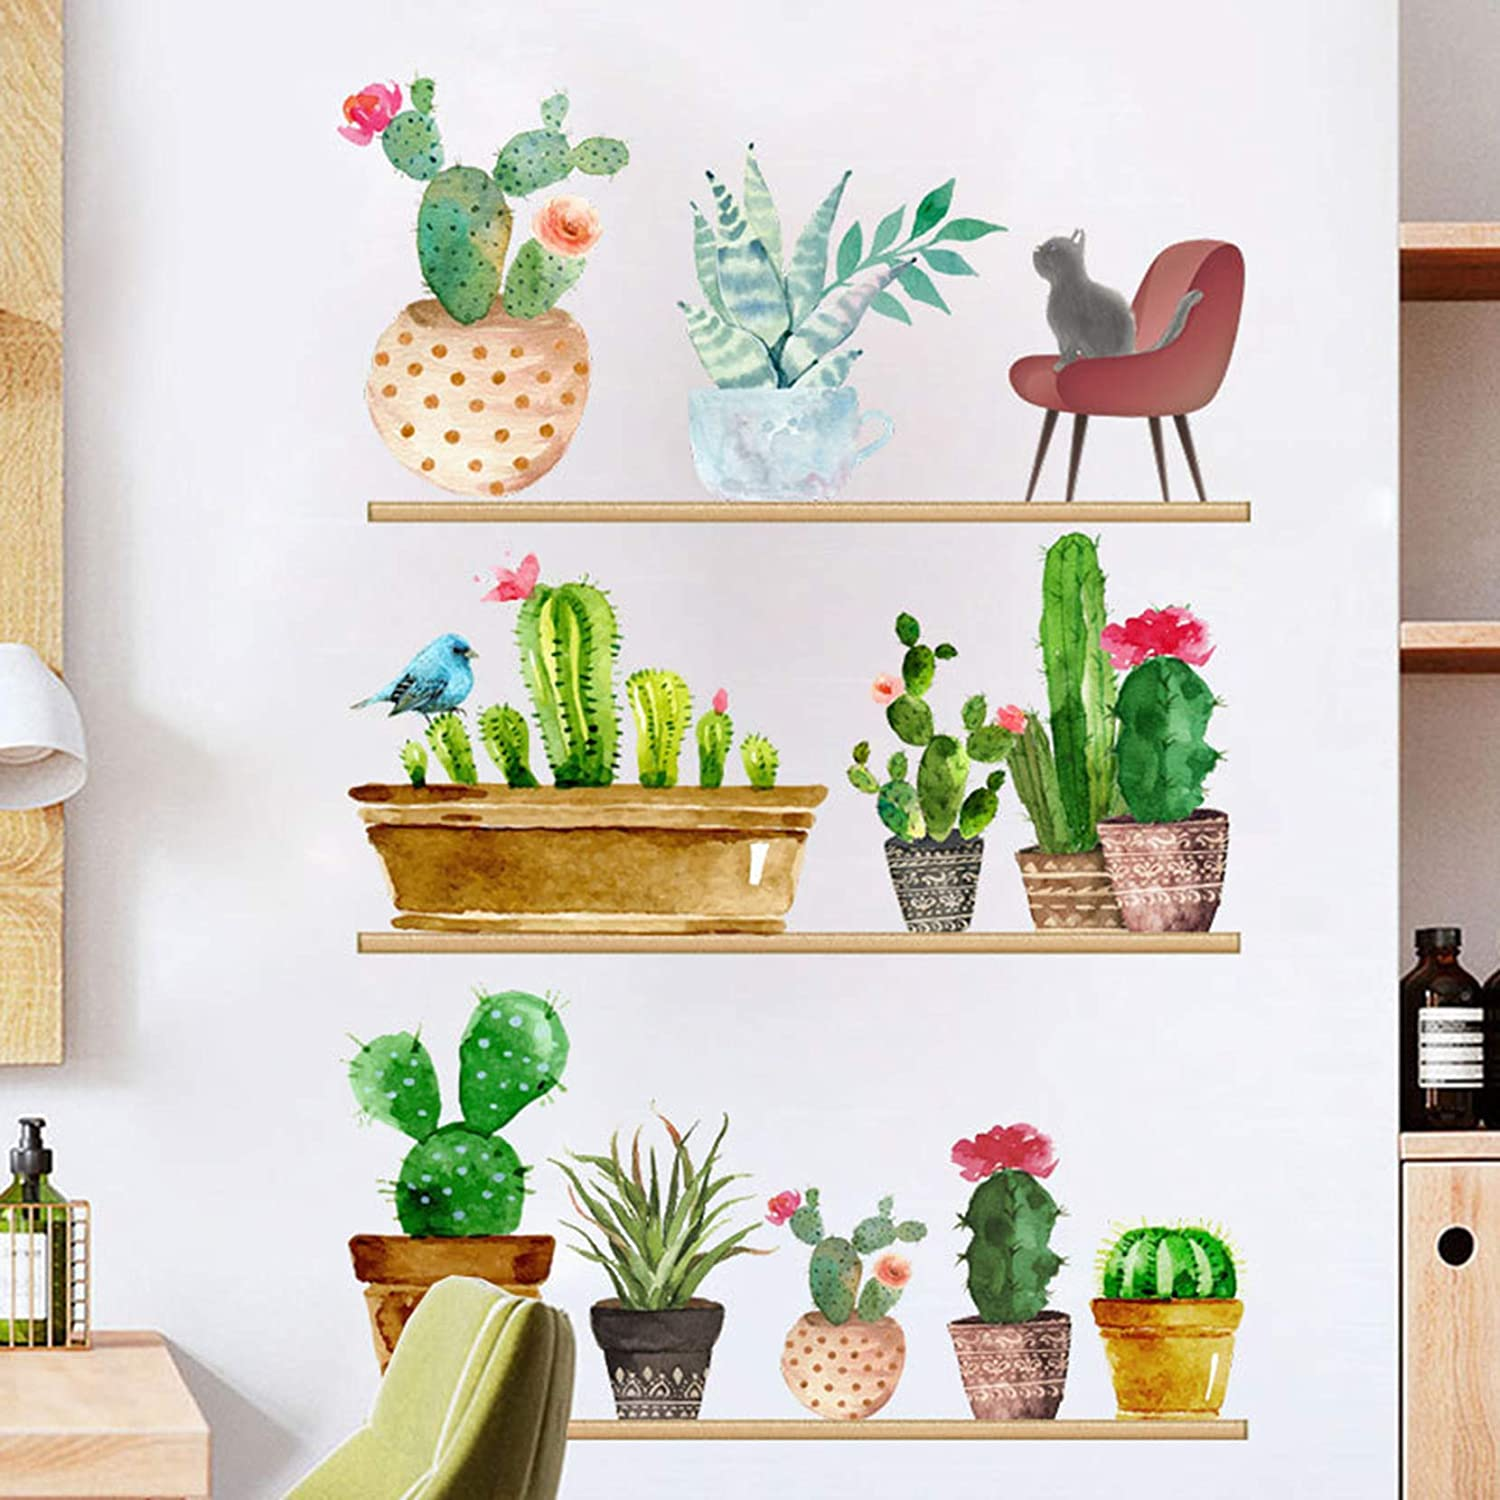 Poorminer Green Plant Wall Decal, Bonsai Cactus Wall Stickers,Watercolor Flower Potted Wall Mural Removable Sticker for Bedroom,Peel and Stick Home Art for Living Room Nursery Children Kids Room Decor